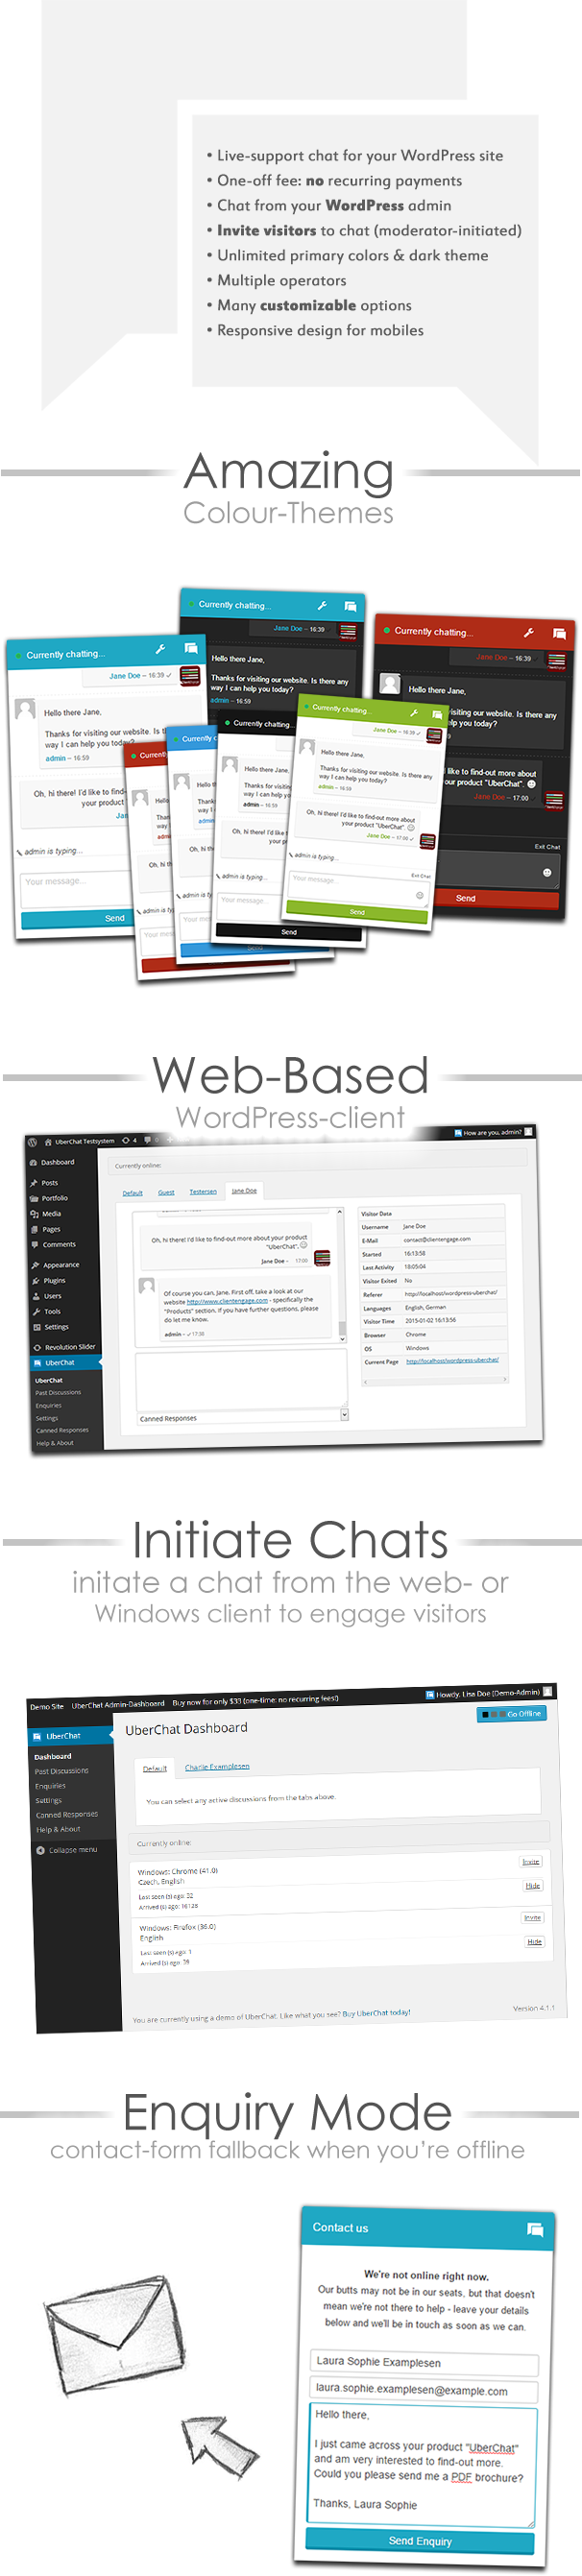 UberChat Overview of Functionality